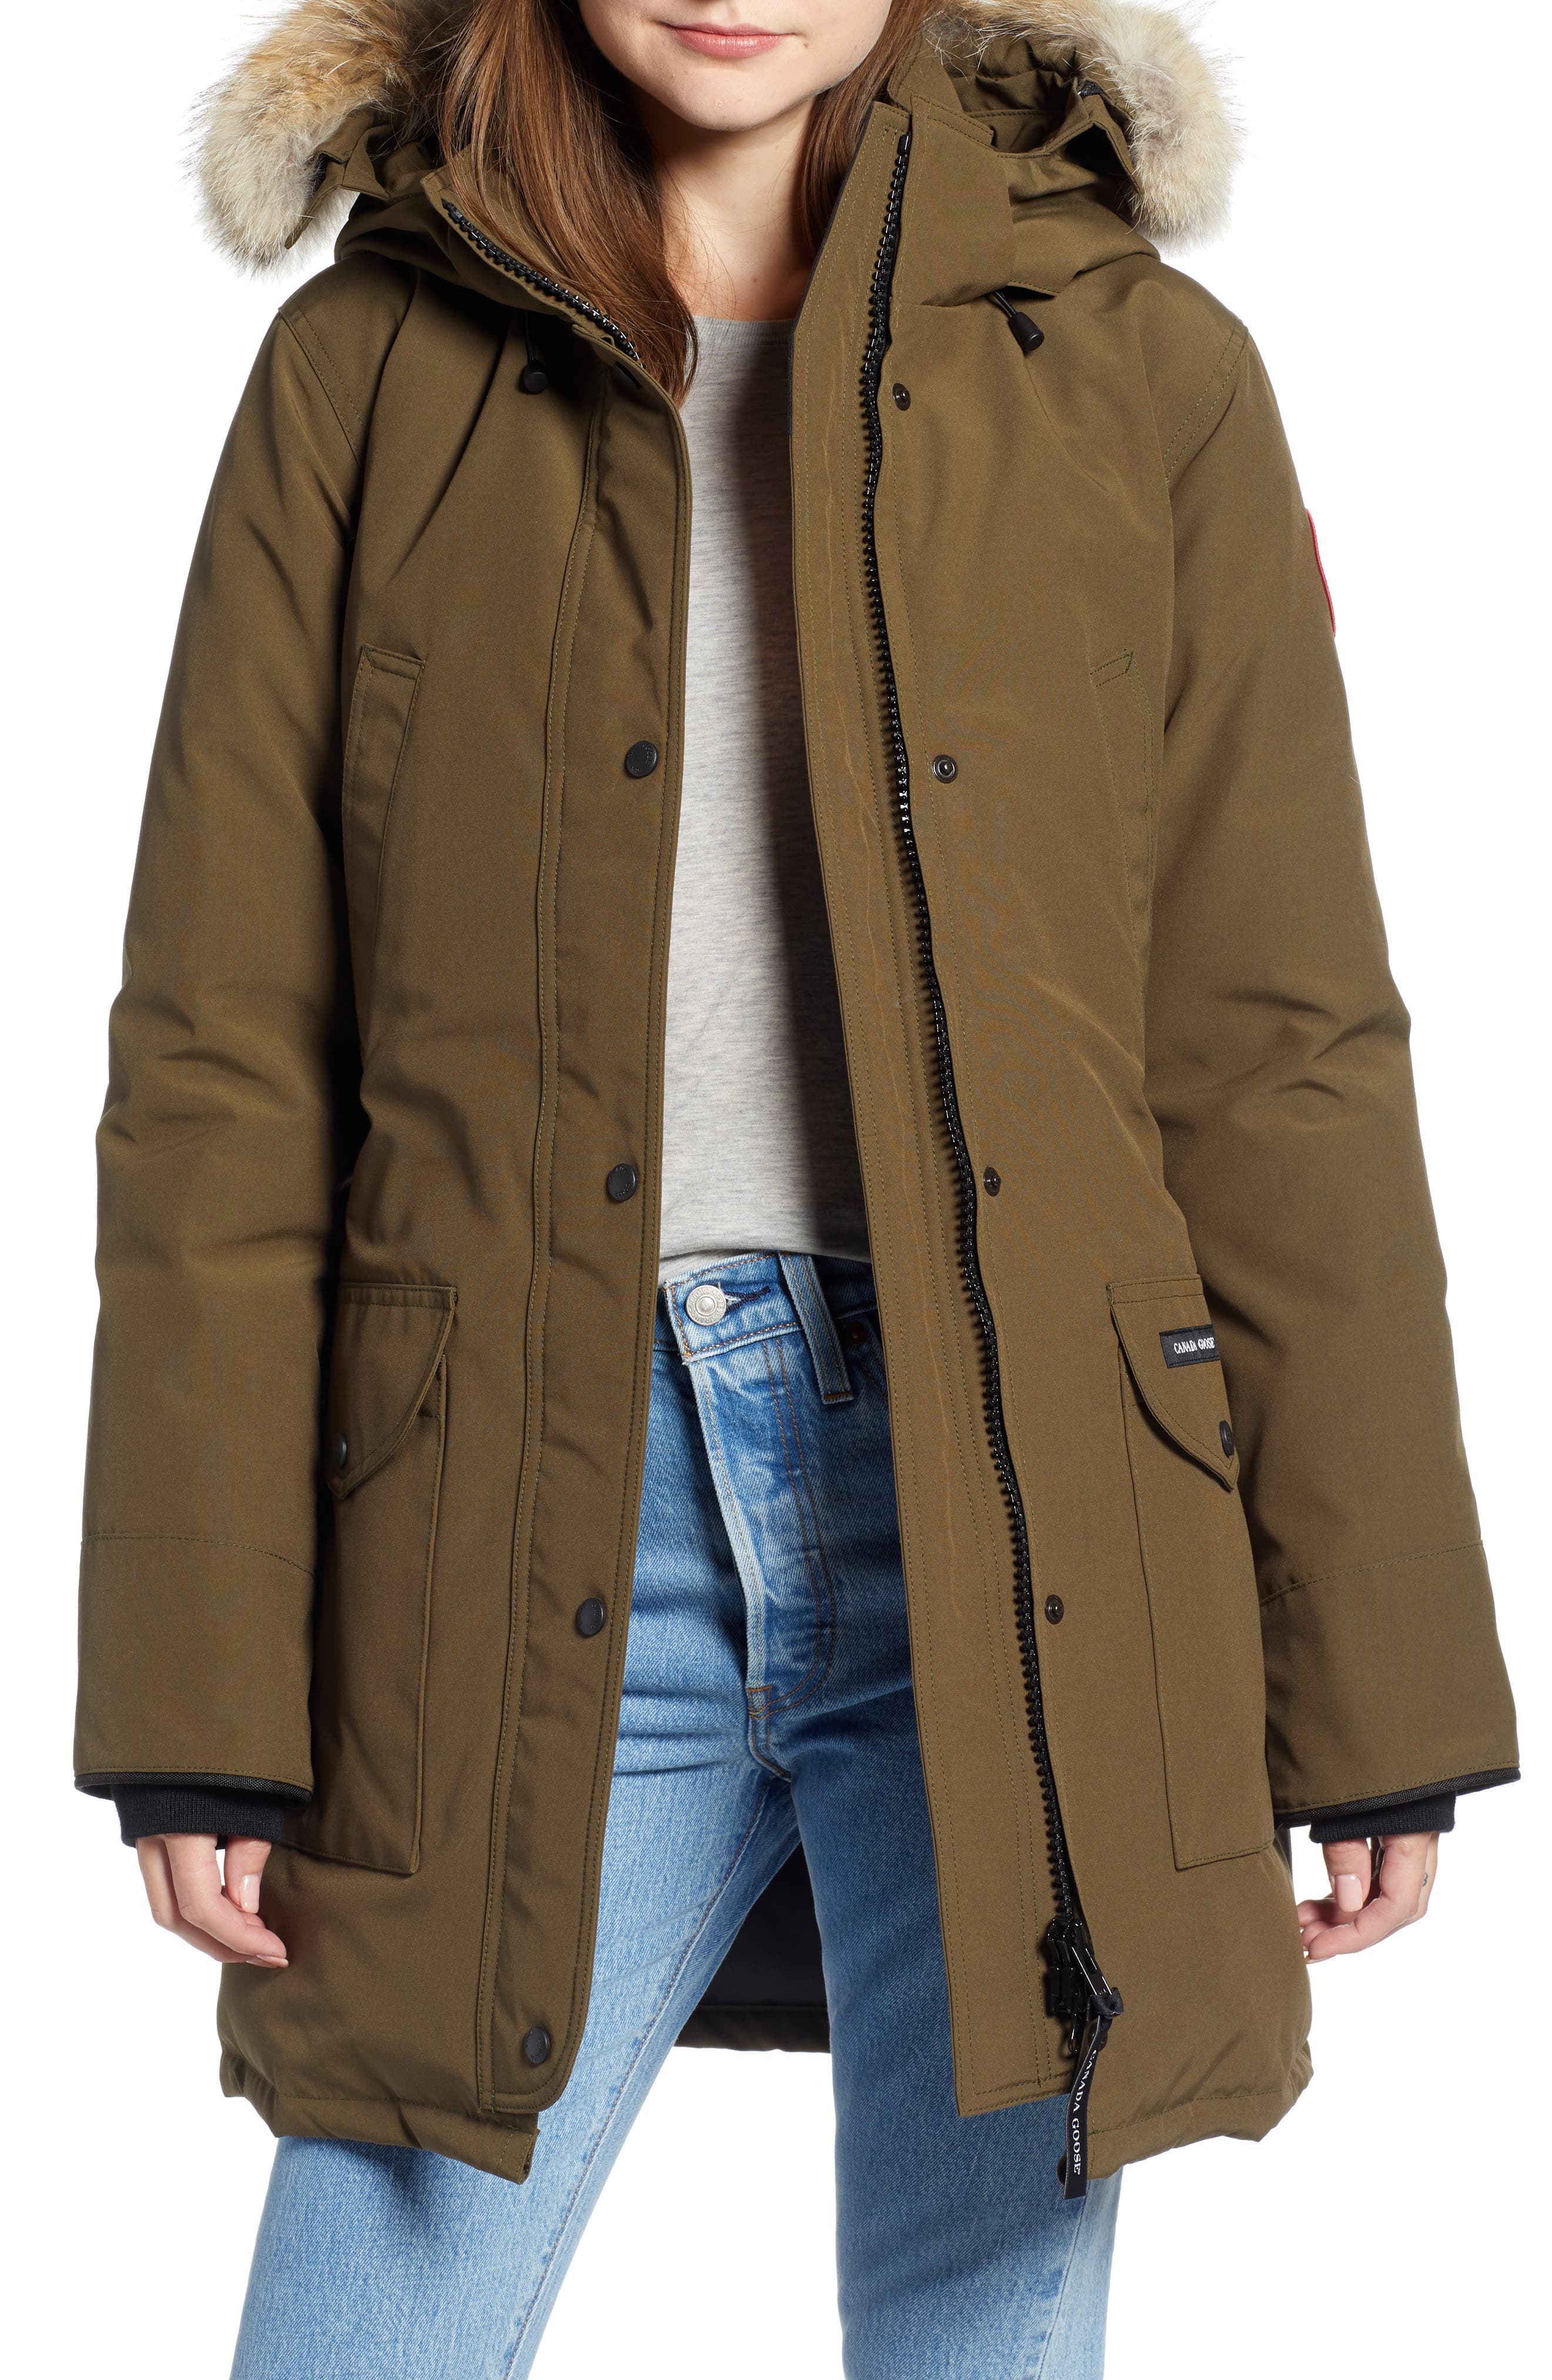 CANADA GOOSE, 'Trillium' Regular Fit Down Parka with Genuine Coyote Fur Trim, Main thumbnail 1, color, MILITARY GREEN